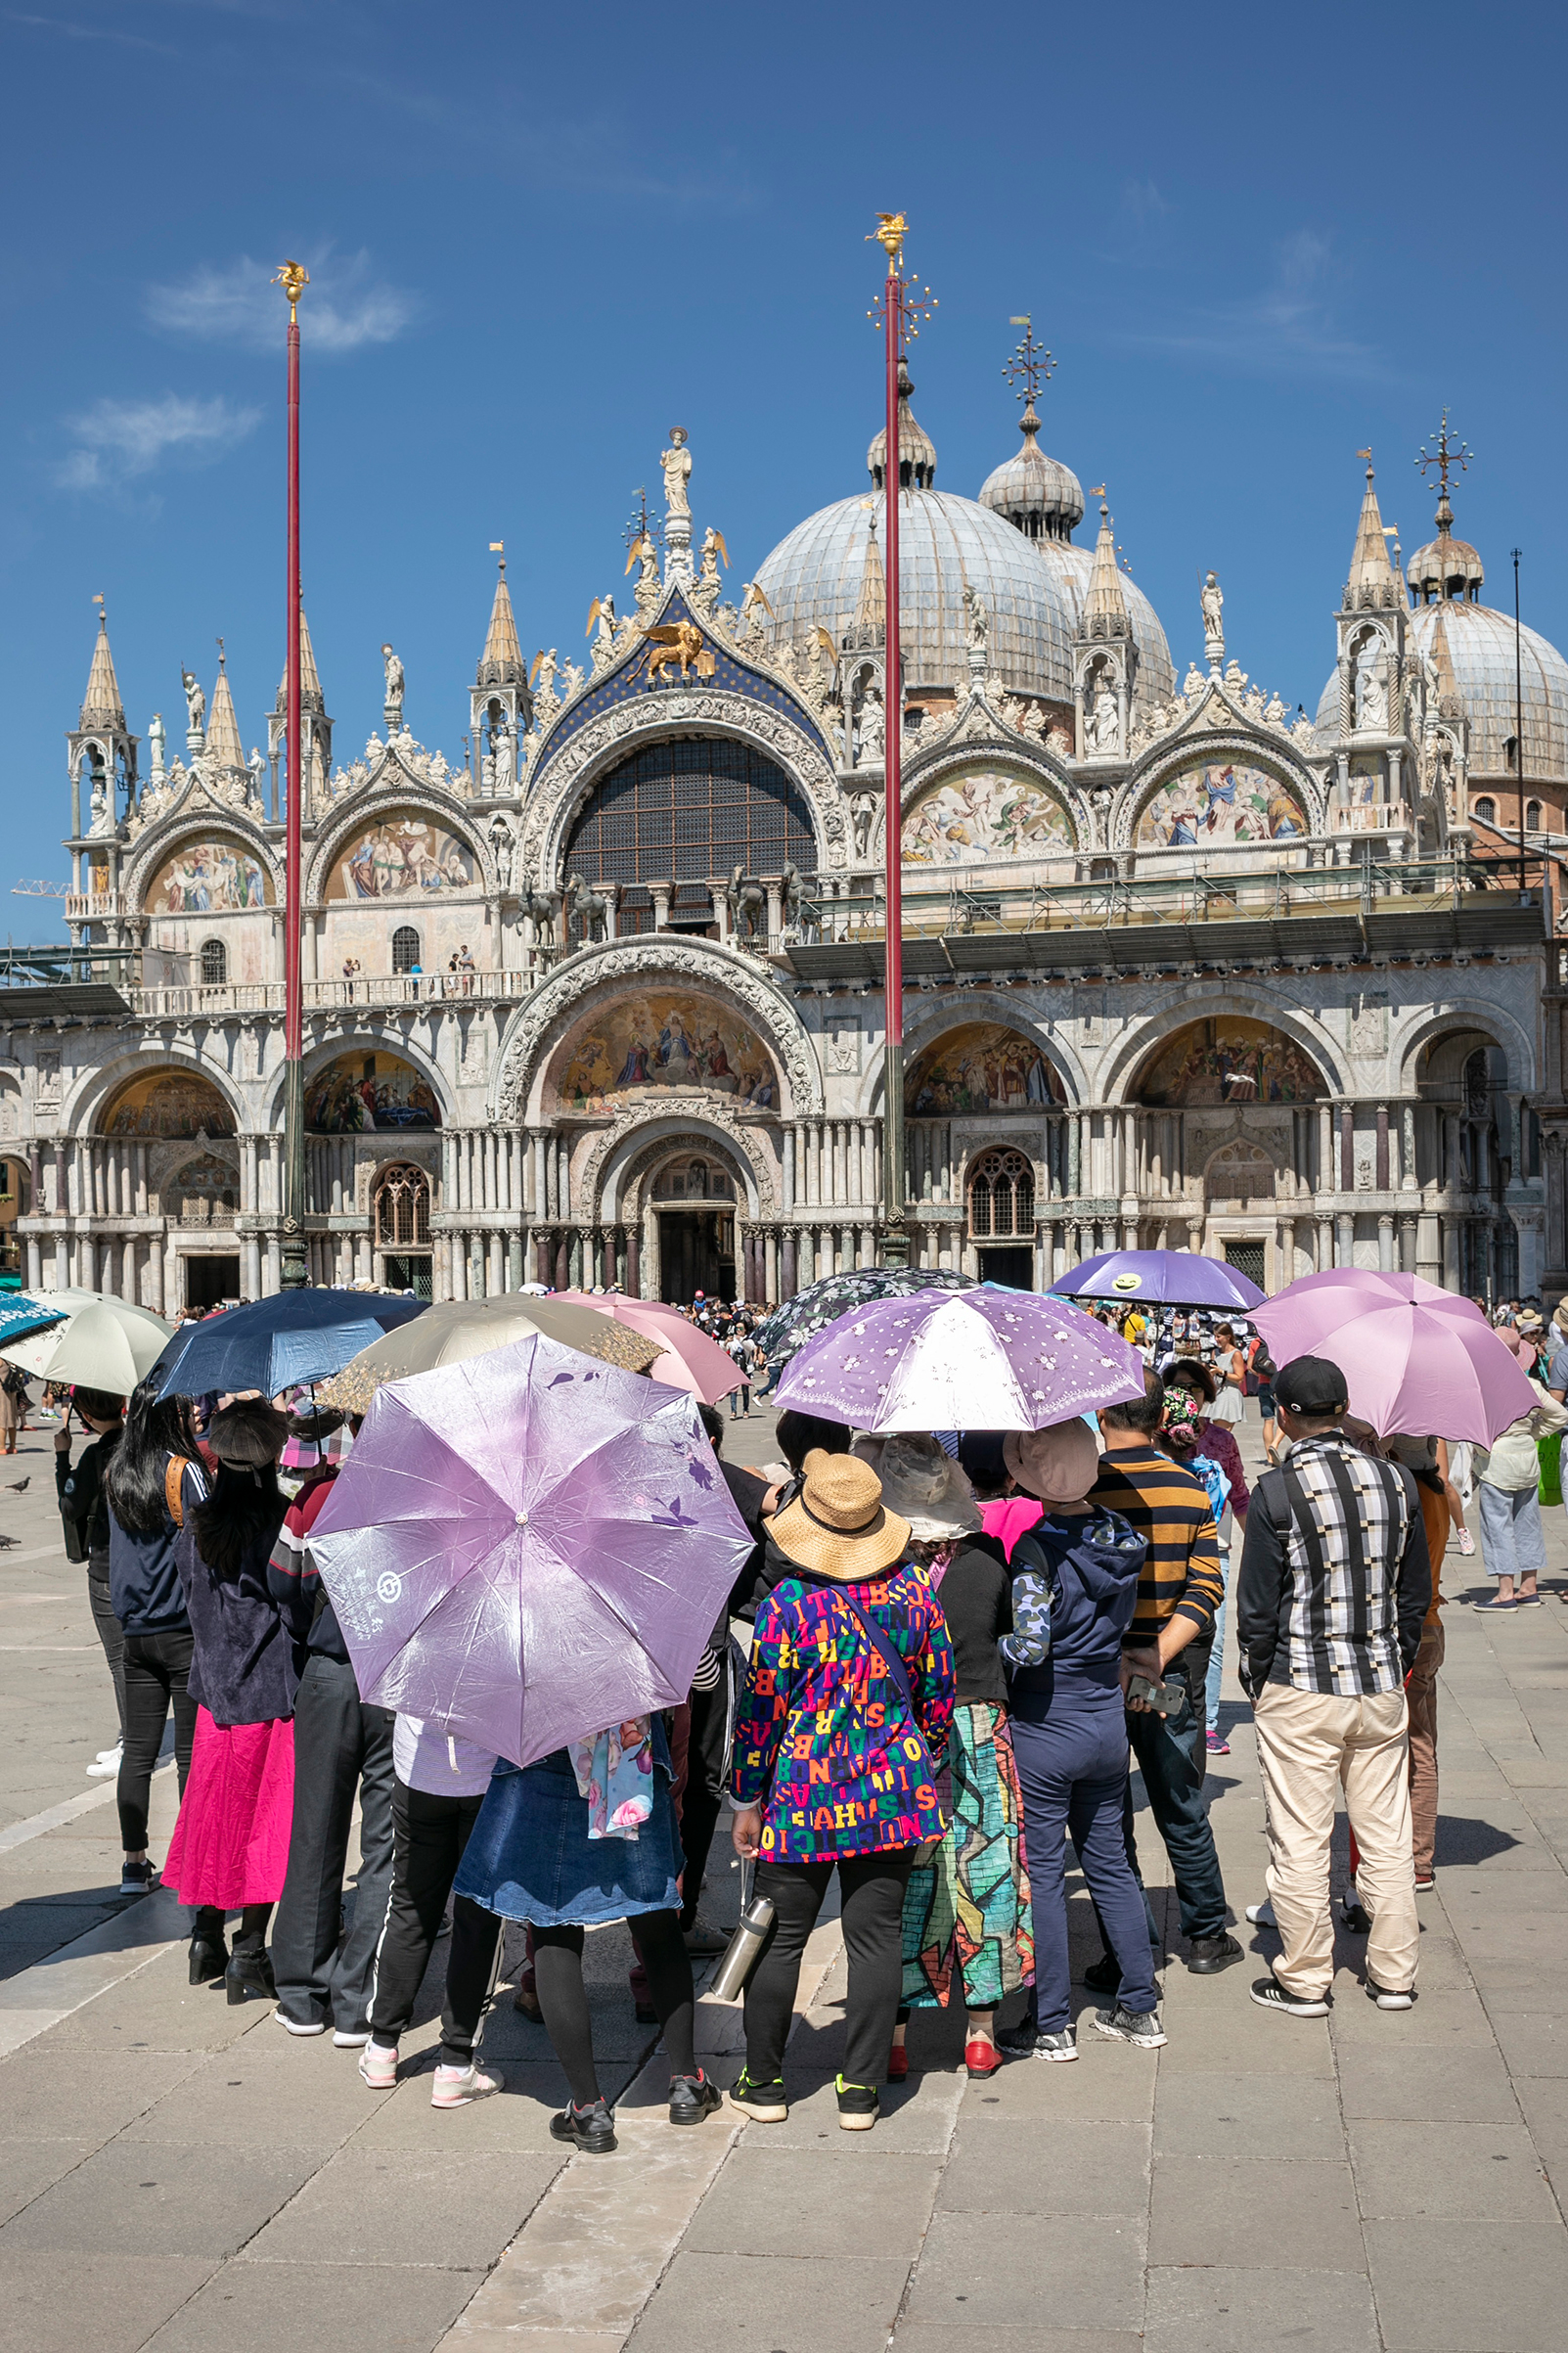 In the spring, Venice introduced temporary checkpoints to prevent day trippers from crowding especially busy areas